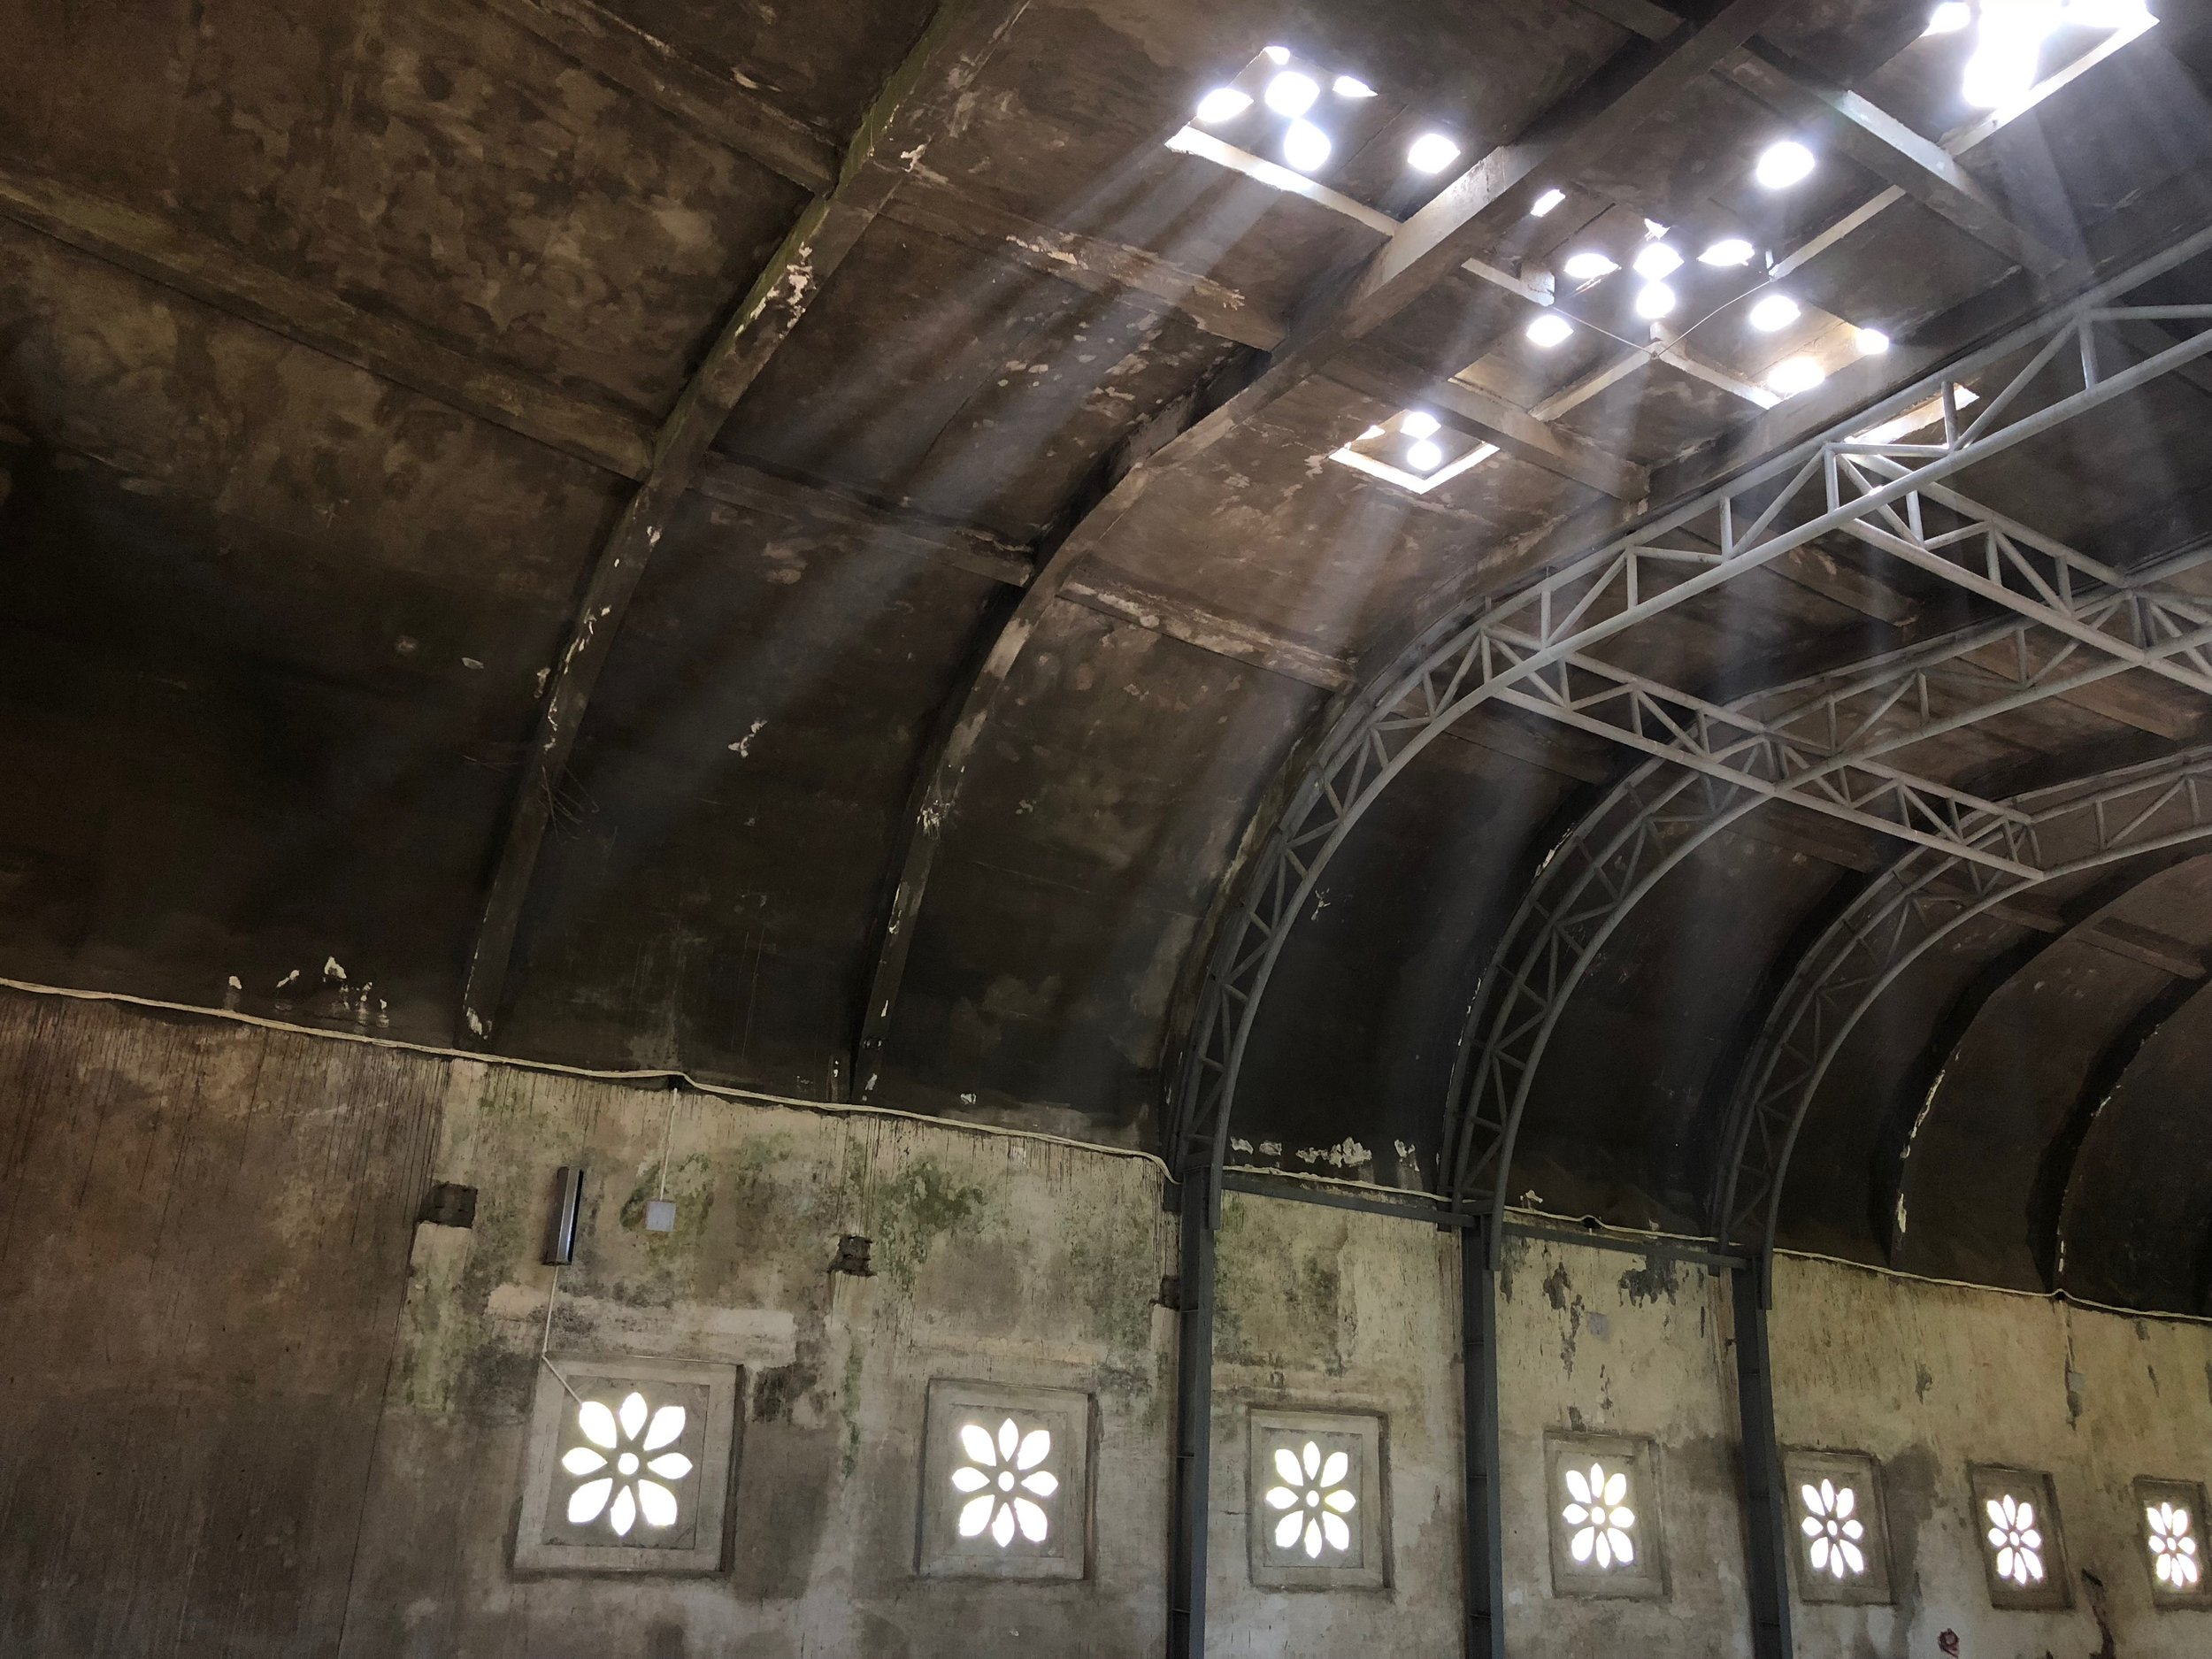 Heavenly rays of light illuminate the decaying interior